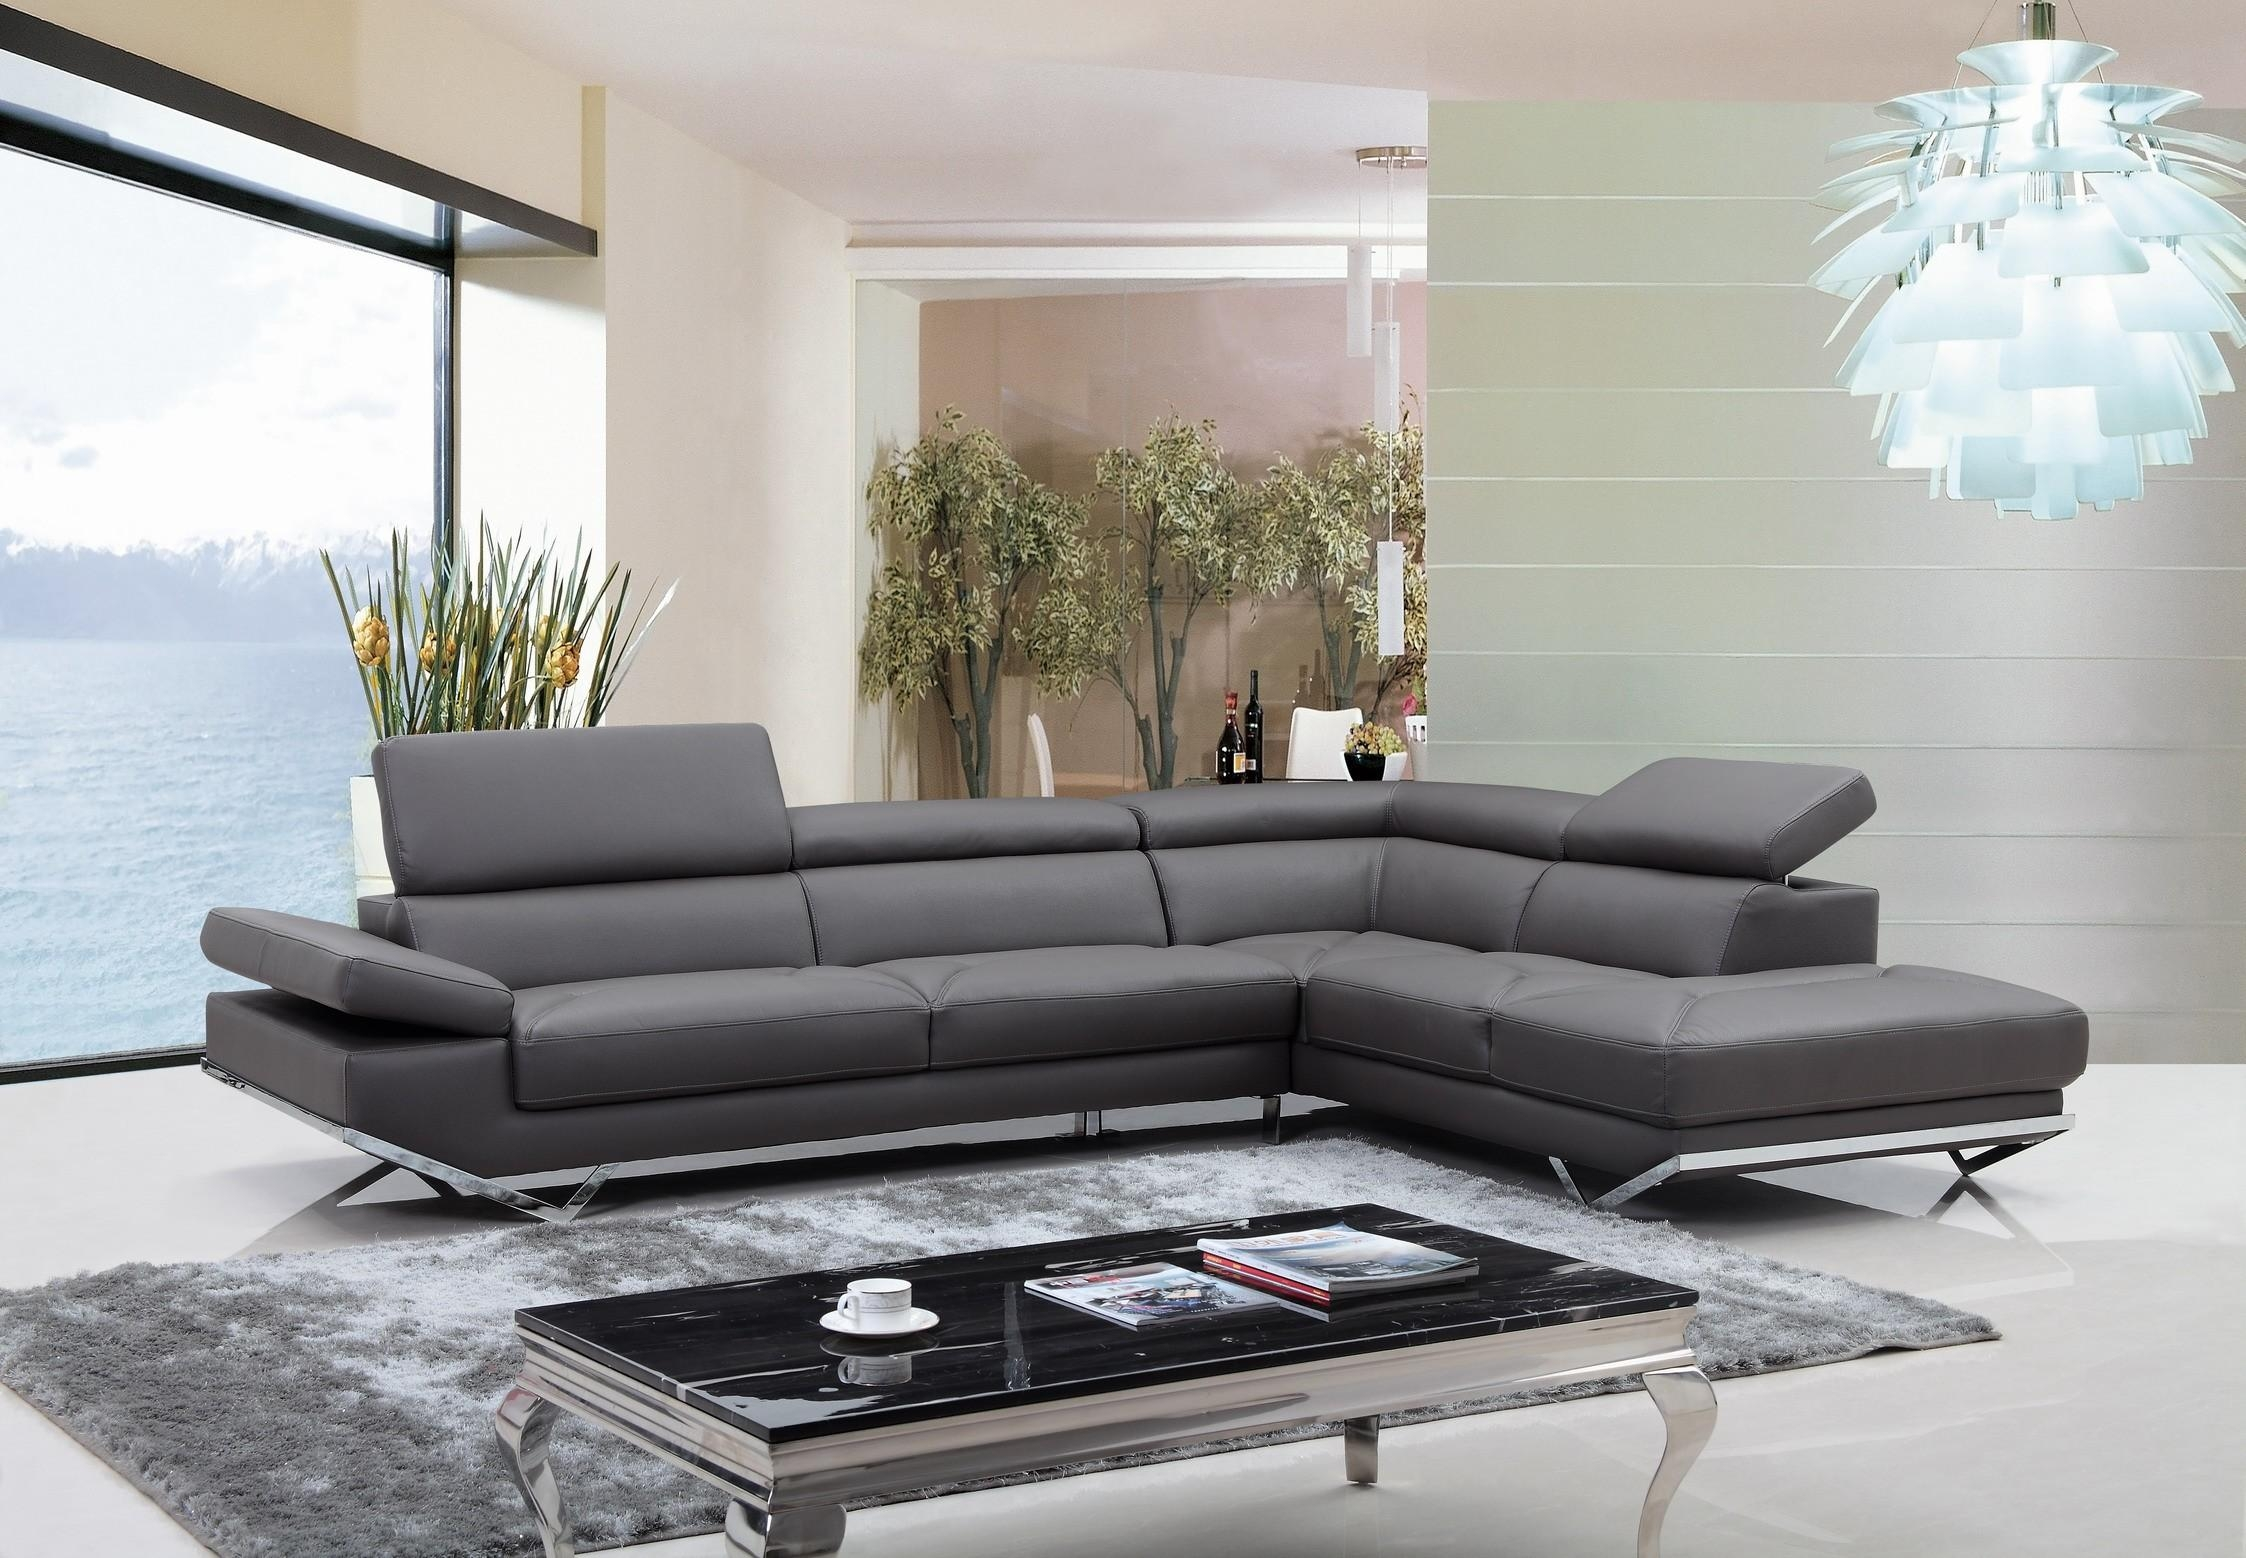 Casa Quebec Modern Dark Grey Eco Leather Sectional Sofa Intended For Gray Leather Sectional Sofas (View 5 of 21)